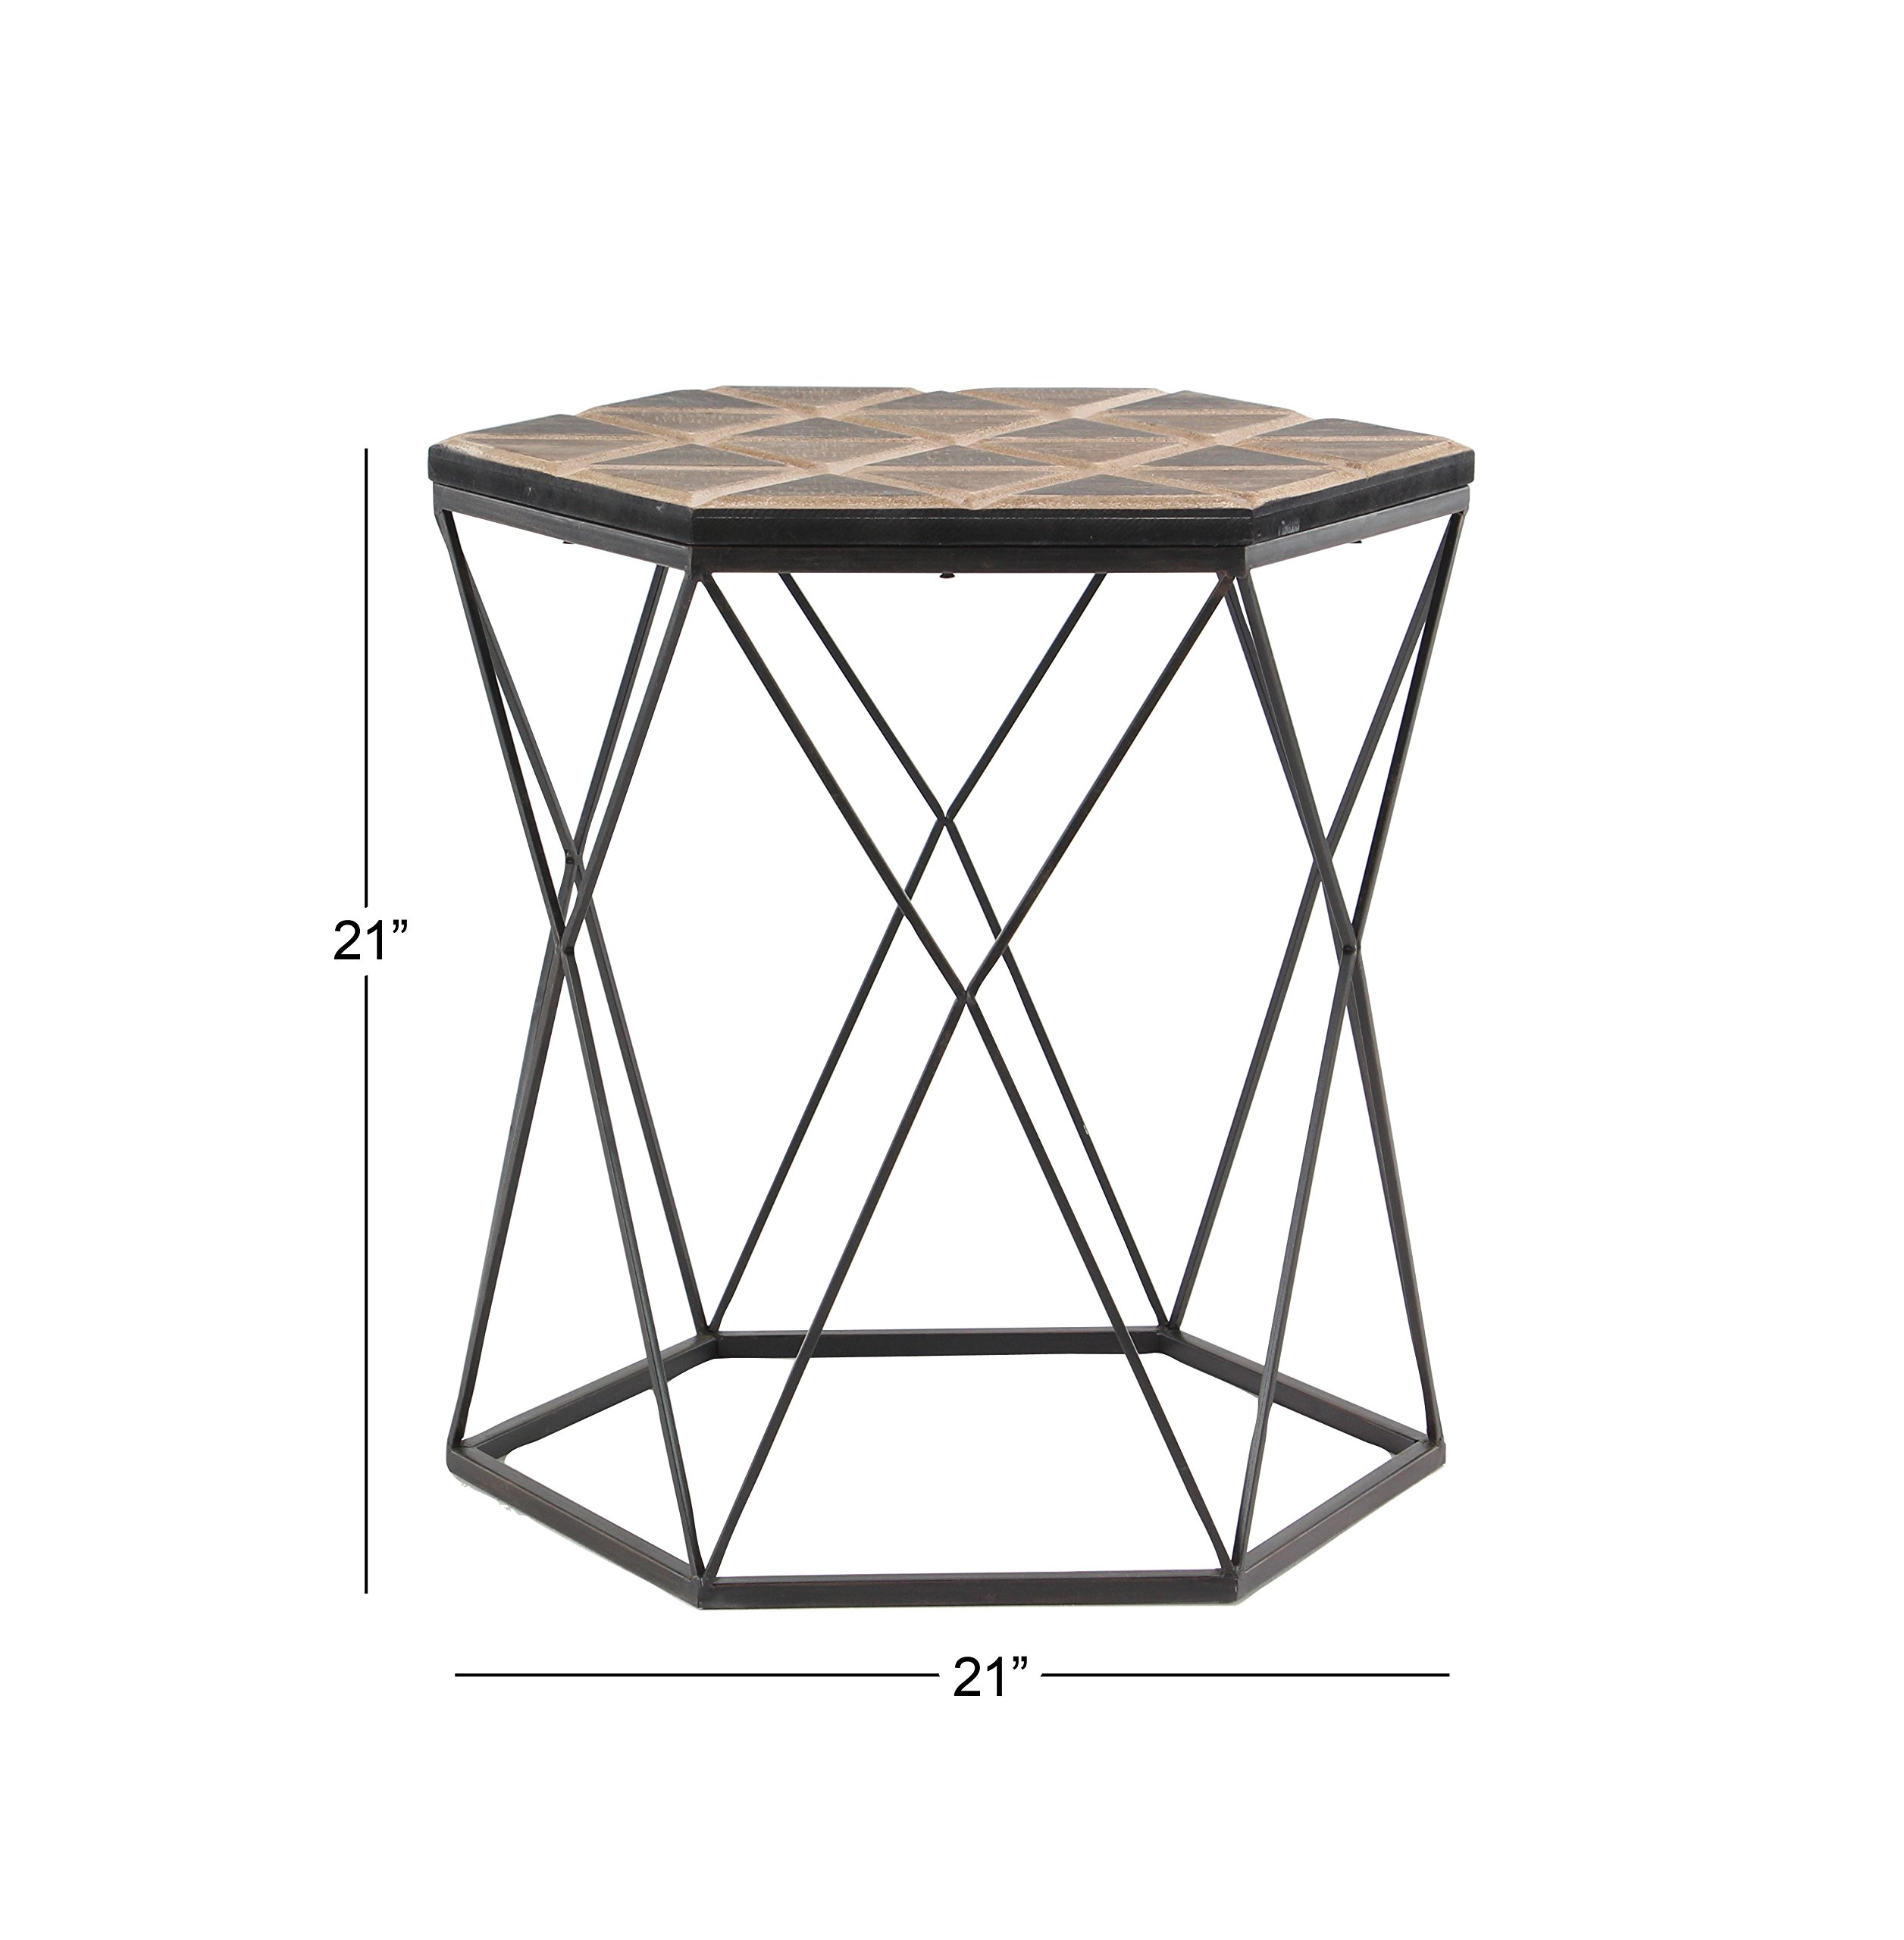 Deco 79 98748 Accent Table Brown/Gray by Deco 79 (Image #3)